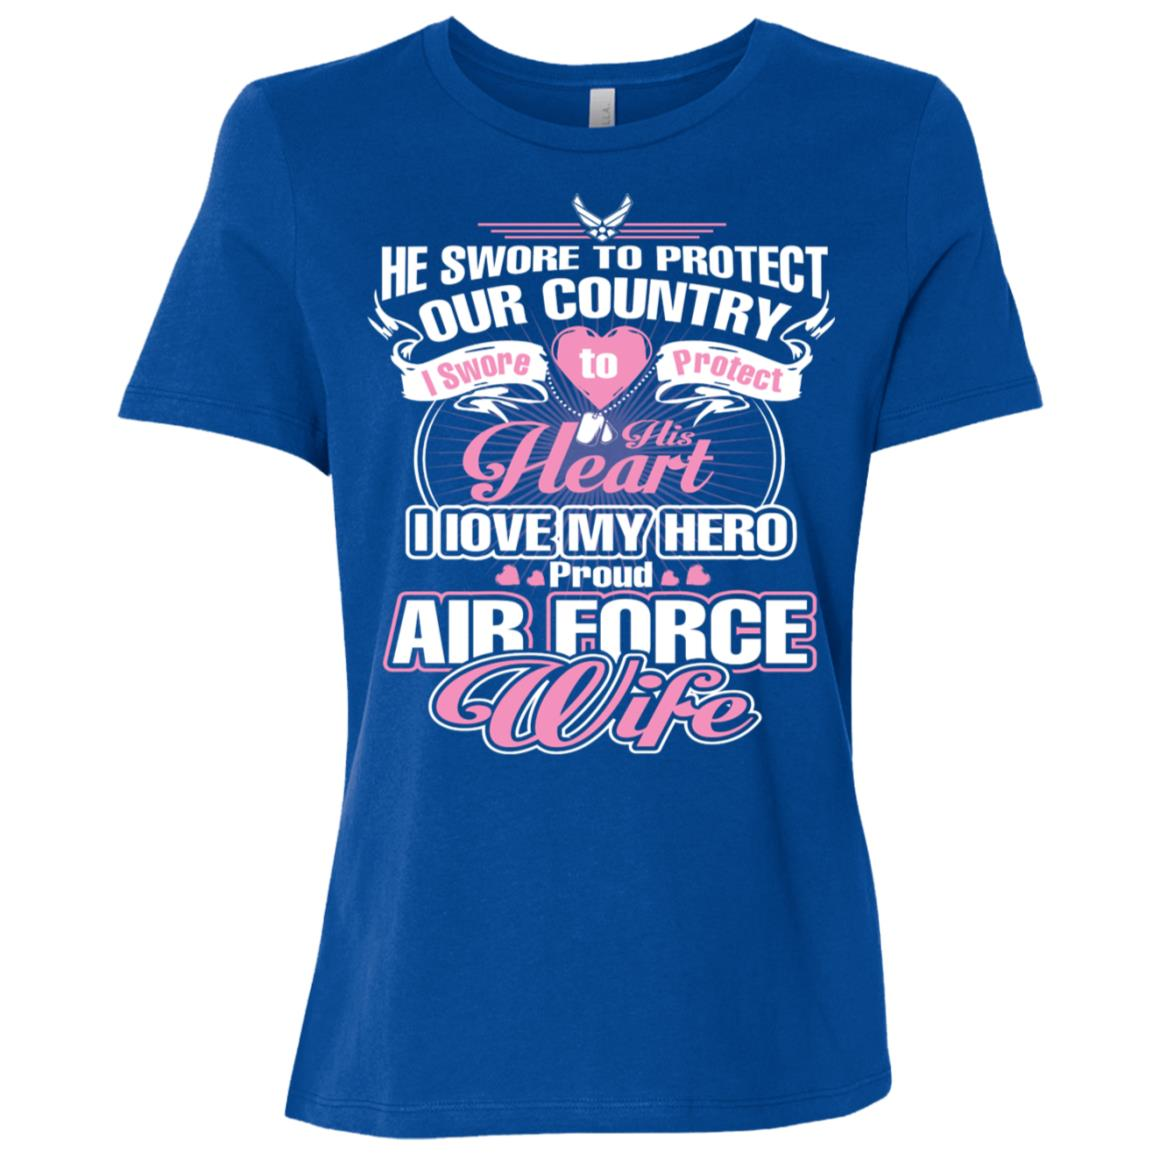 Air Force Wife! -Tee and tee Women Short Sleeve T-Shirt